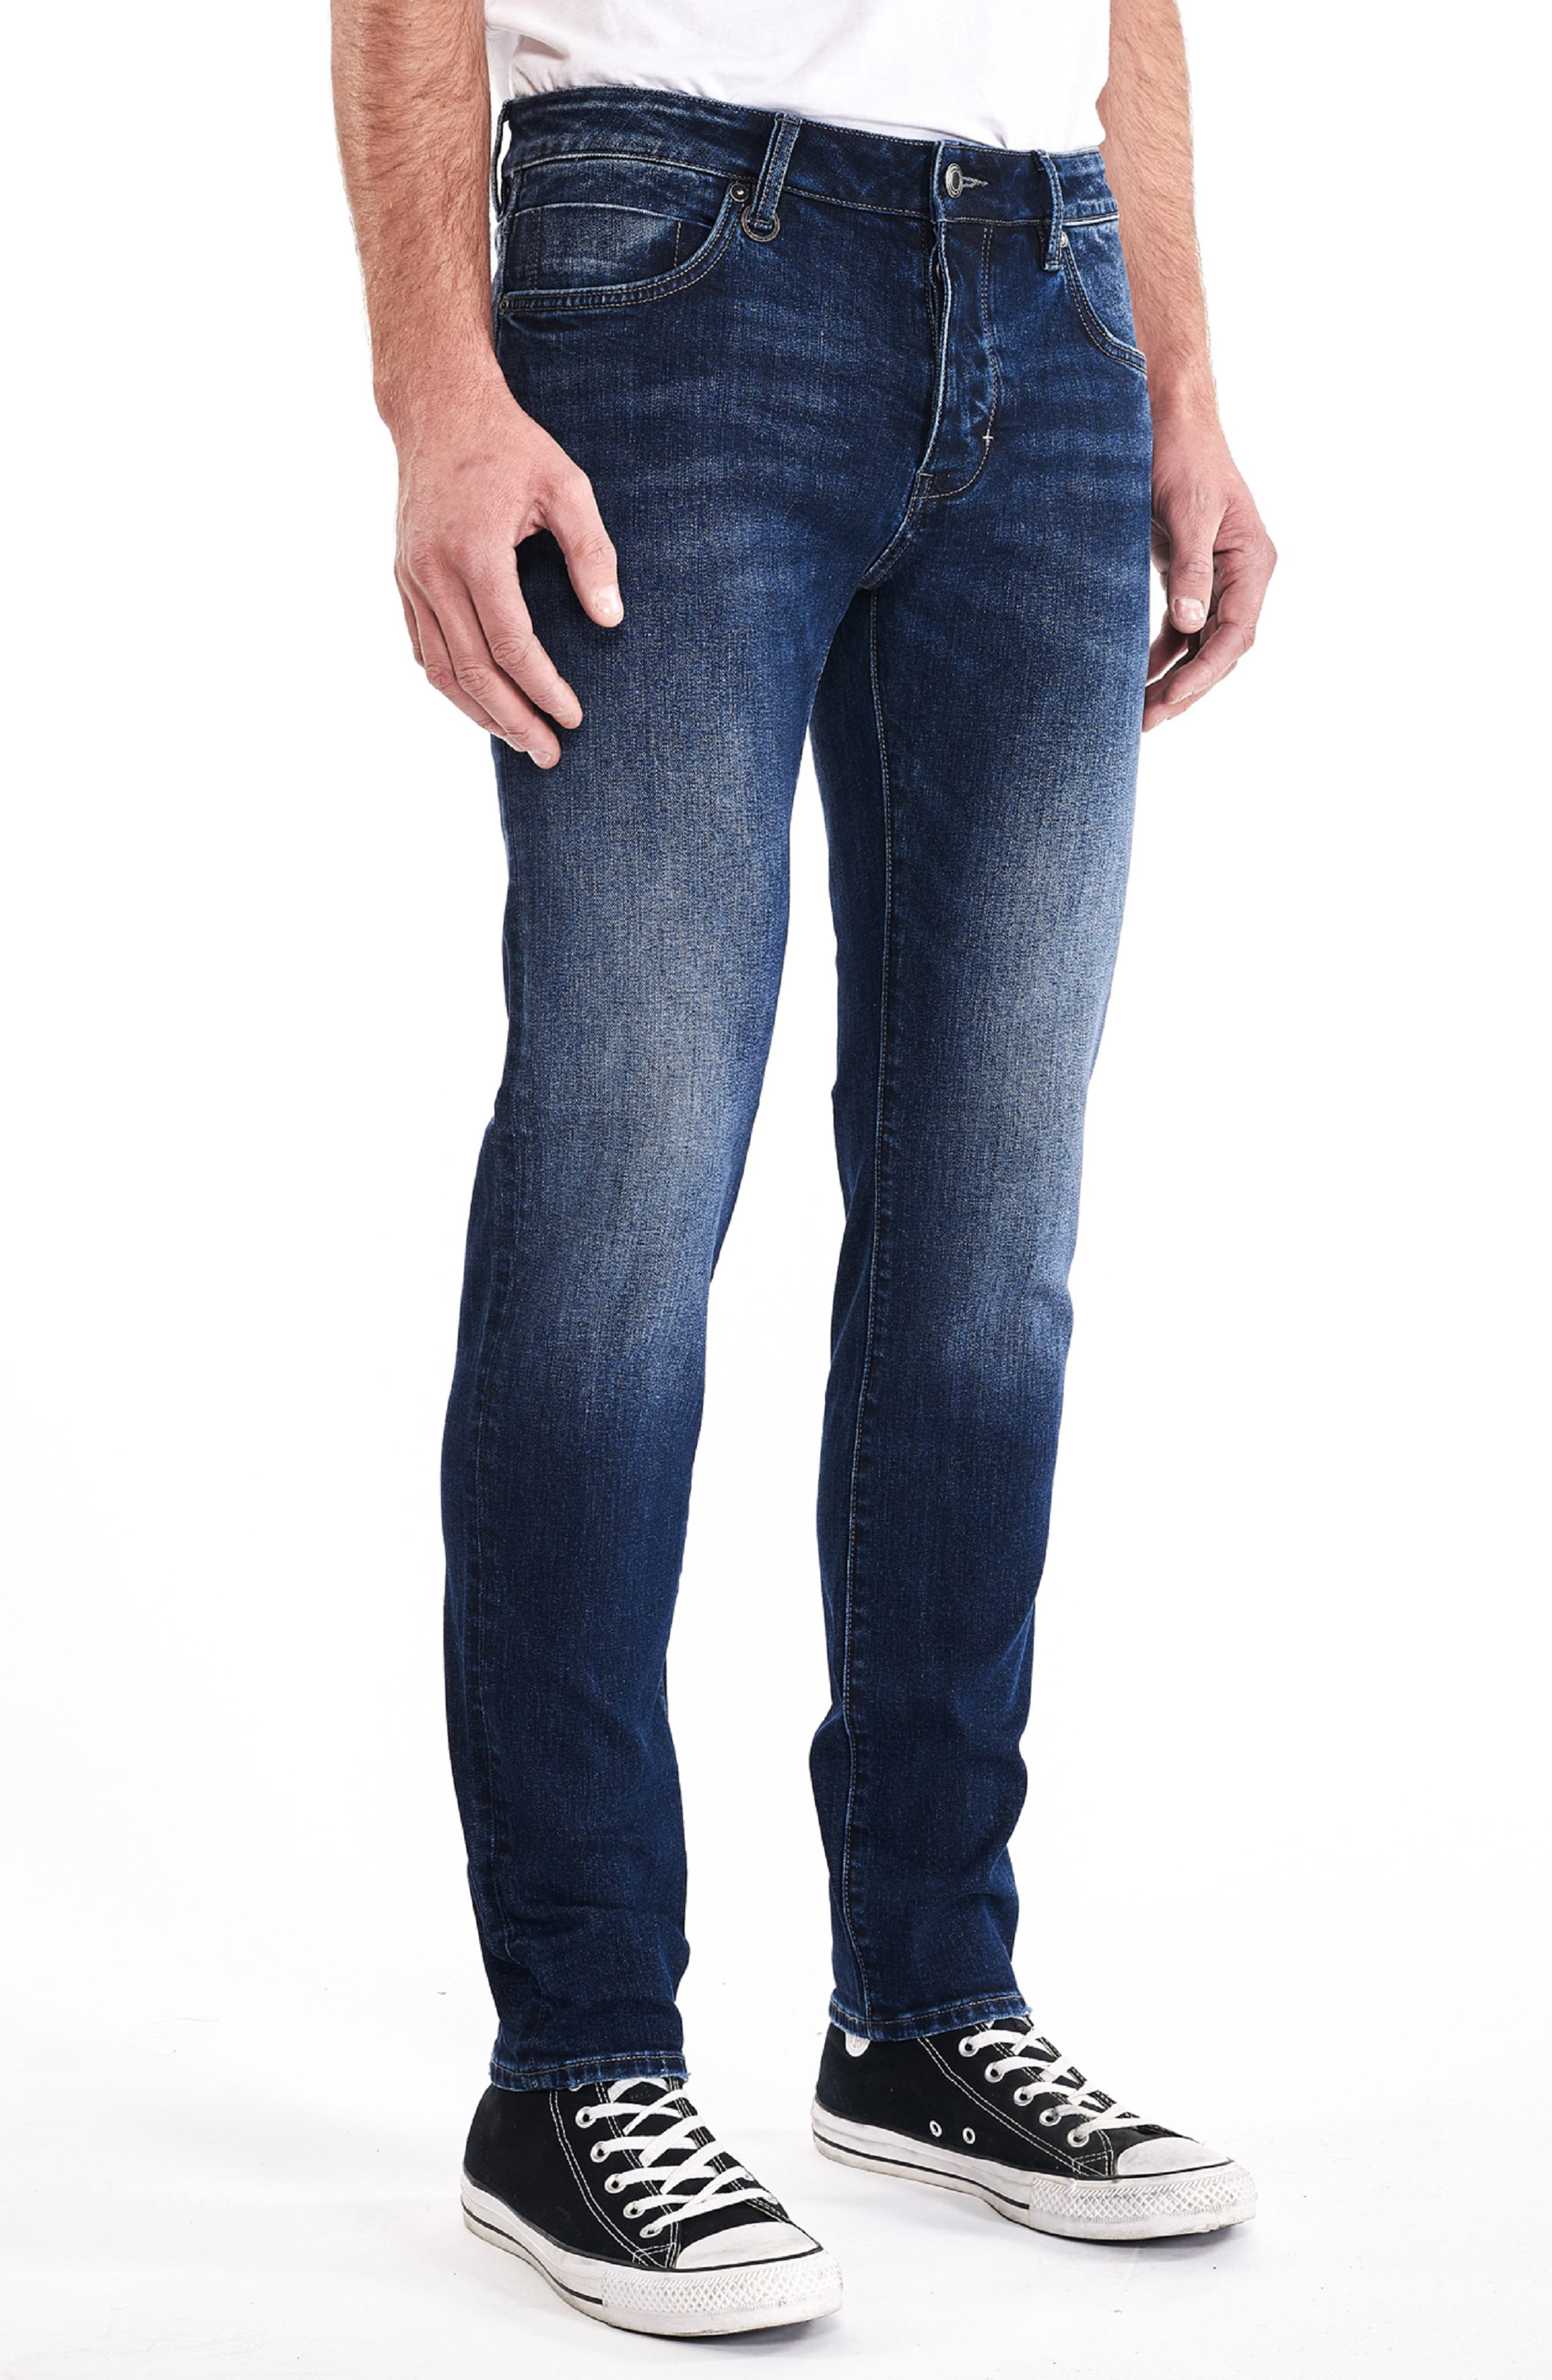 Lou Skinny Fit Jeans,                             Alternate thumbnail 3, color,                             406